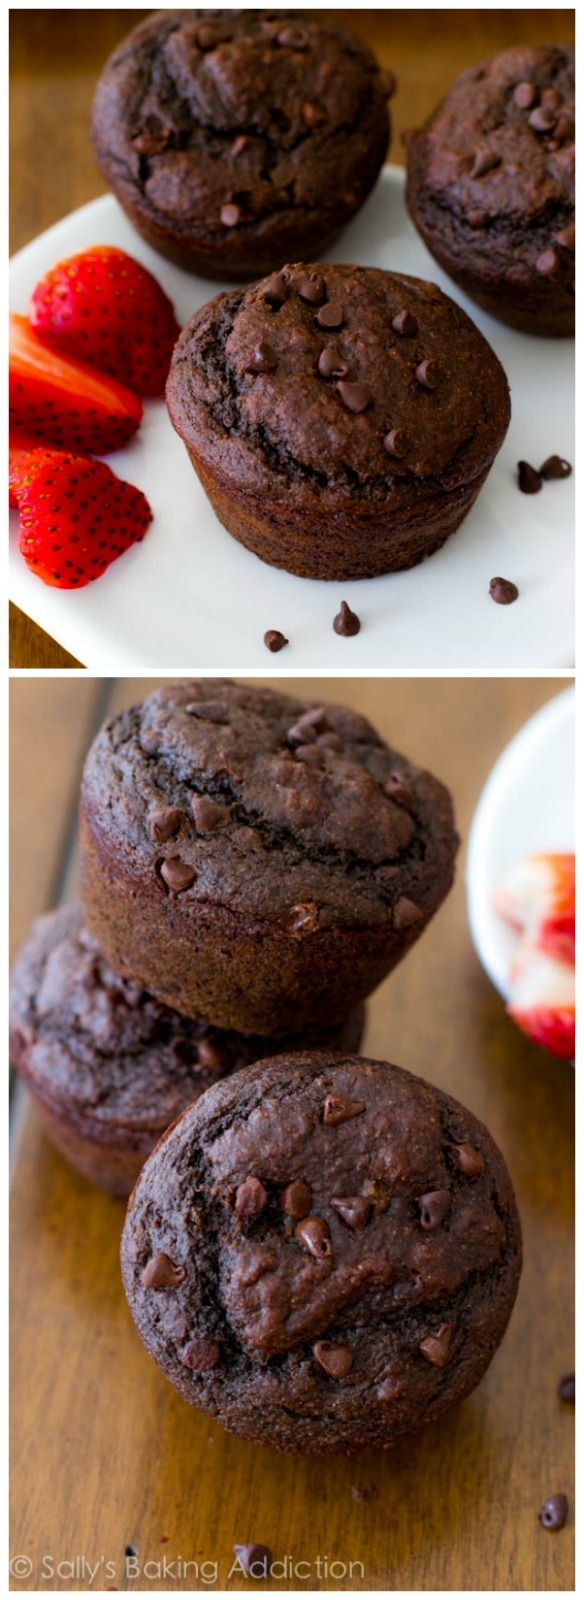 I make these Low Fat, Skinny Double Chocolate Muffins whenever I have a chocolate craving. Which is often!